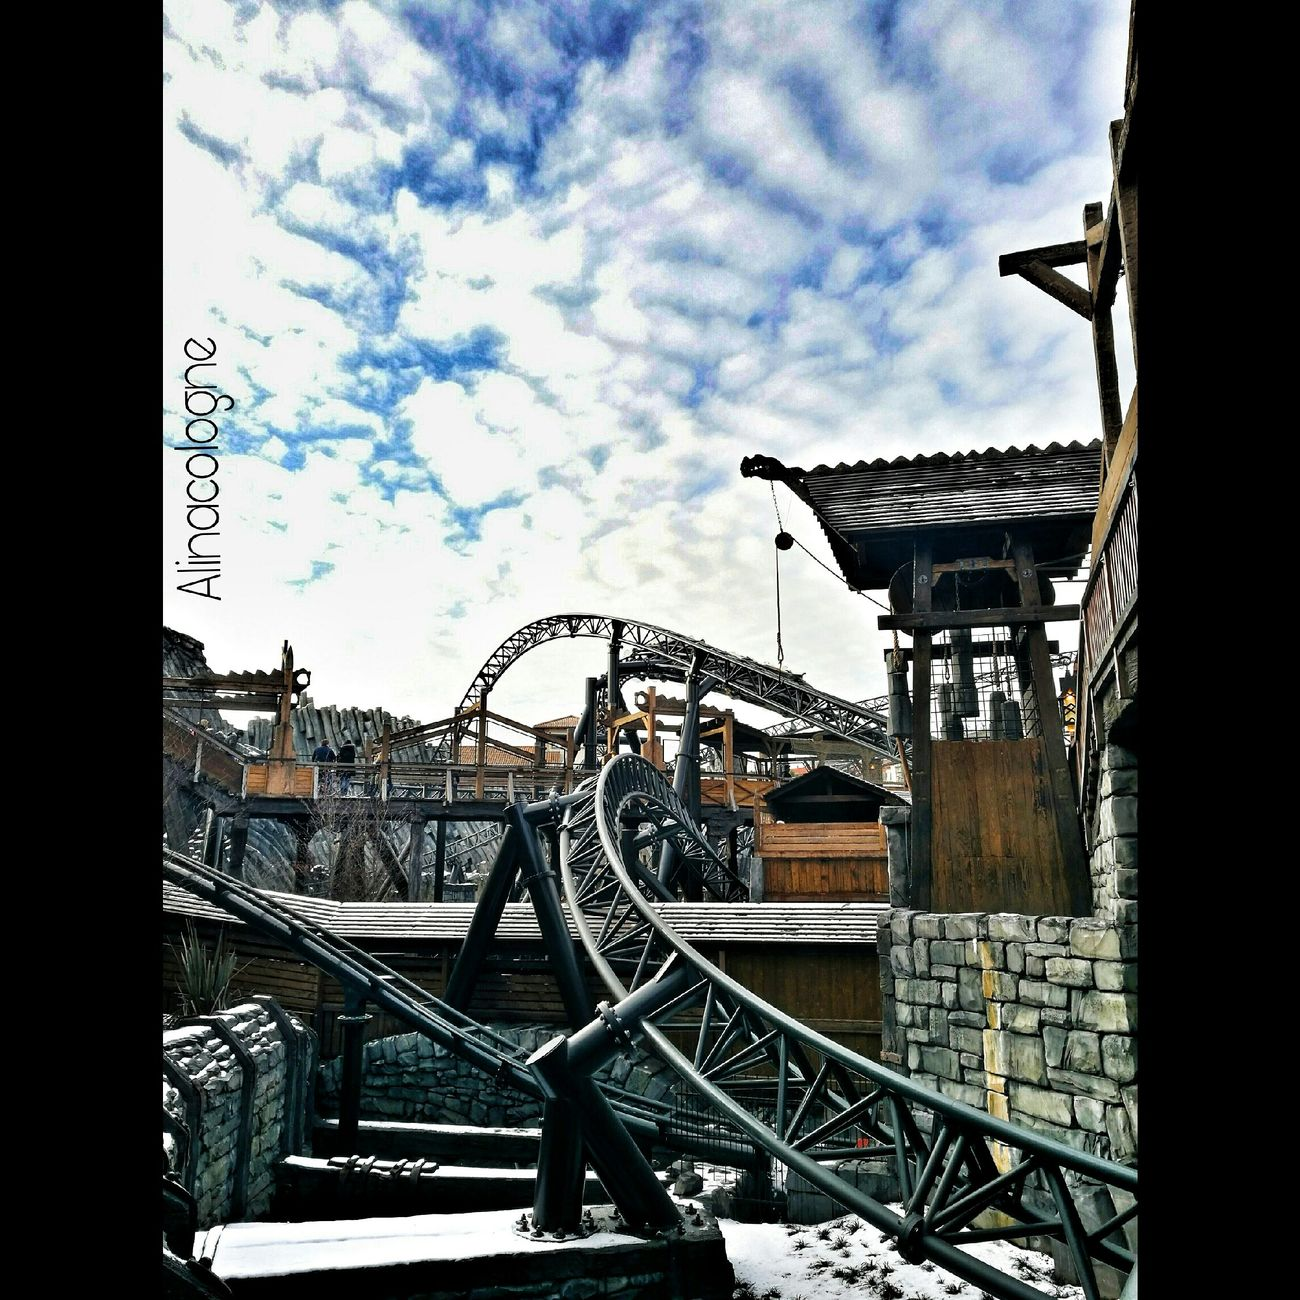 Klugheim Phantasialand Brühl Love Secondhome Liebe Taron Photography Shoot Day Outdoors No People Architecture Sky And Clouds Skyporn Rollercoaster Freizeitpark Köln, Germany Sky Railing Built Structure Steps Building Exterior First Eyeem Photo